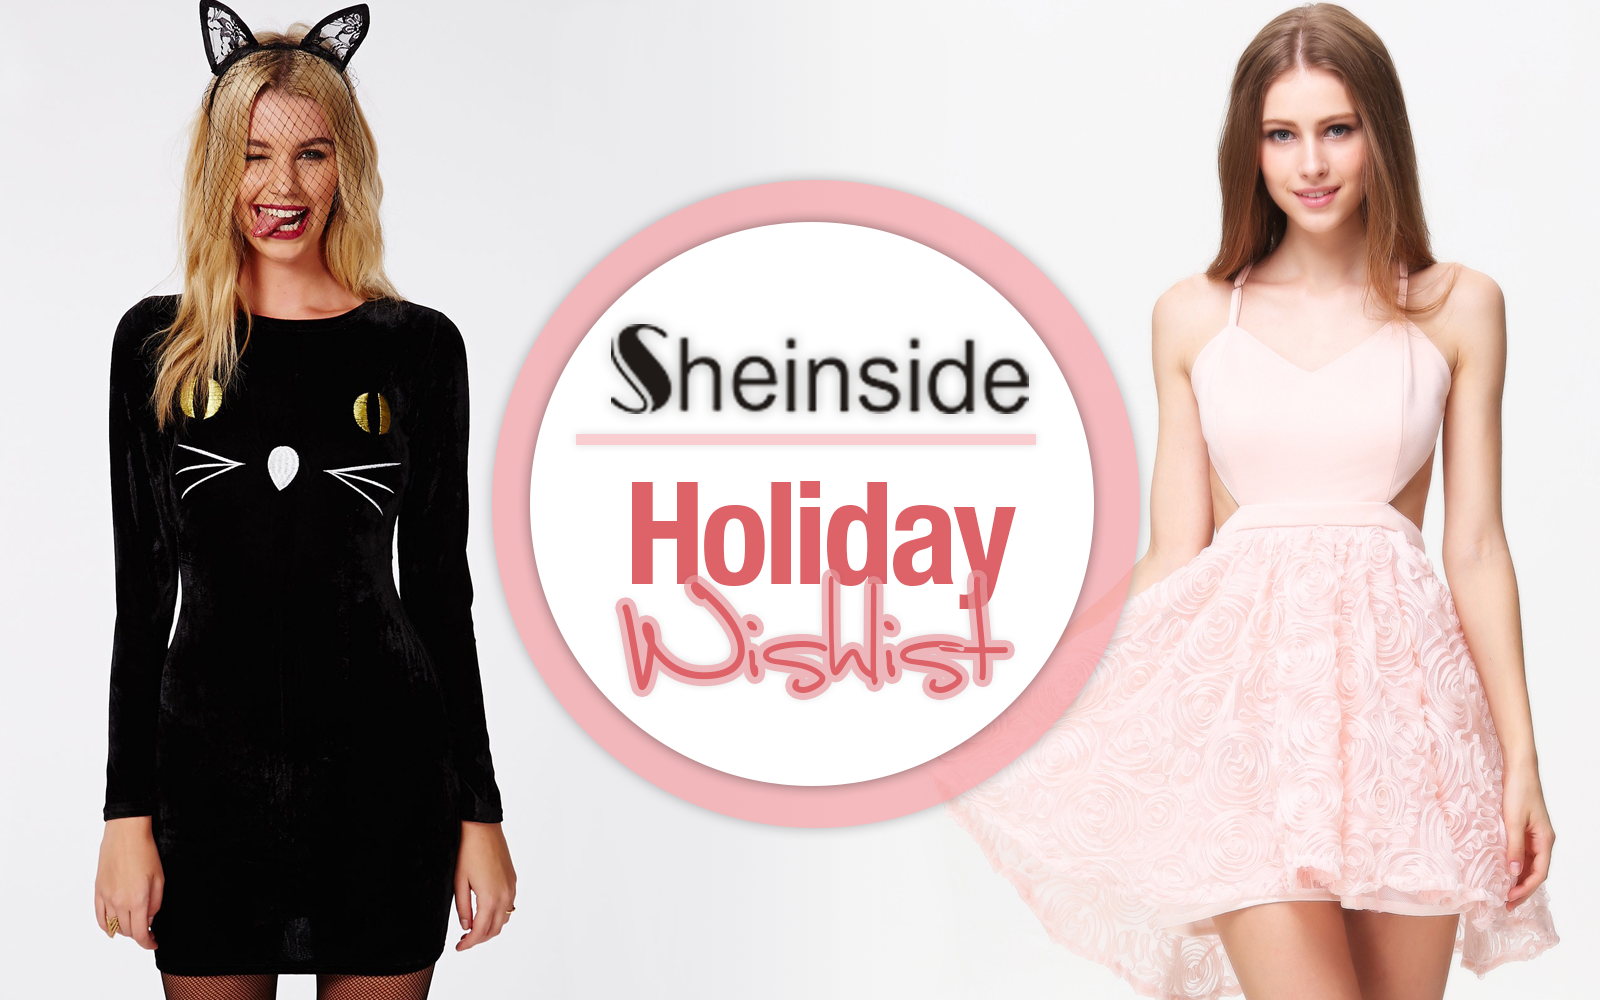 My SheInside Holiday Wishlist! Featuring dresses, skirts, leggings, crop tops, and much more!